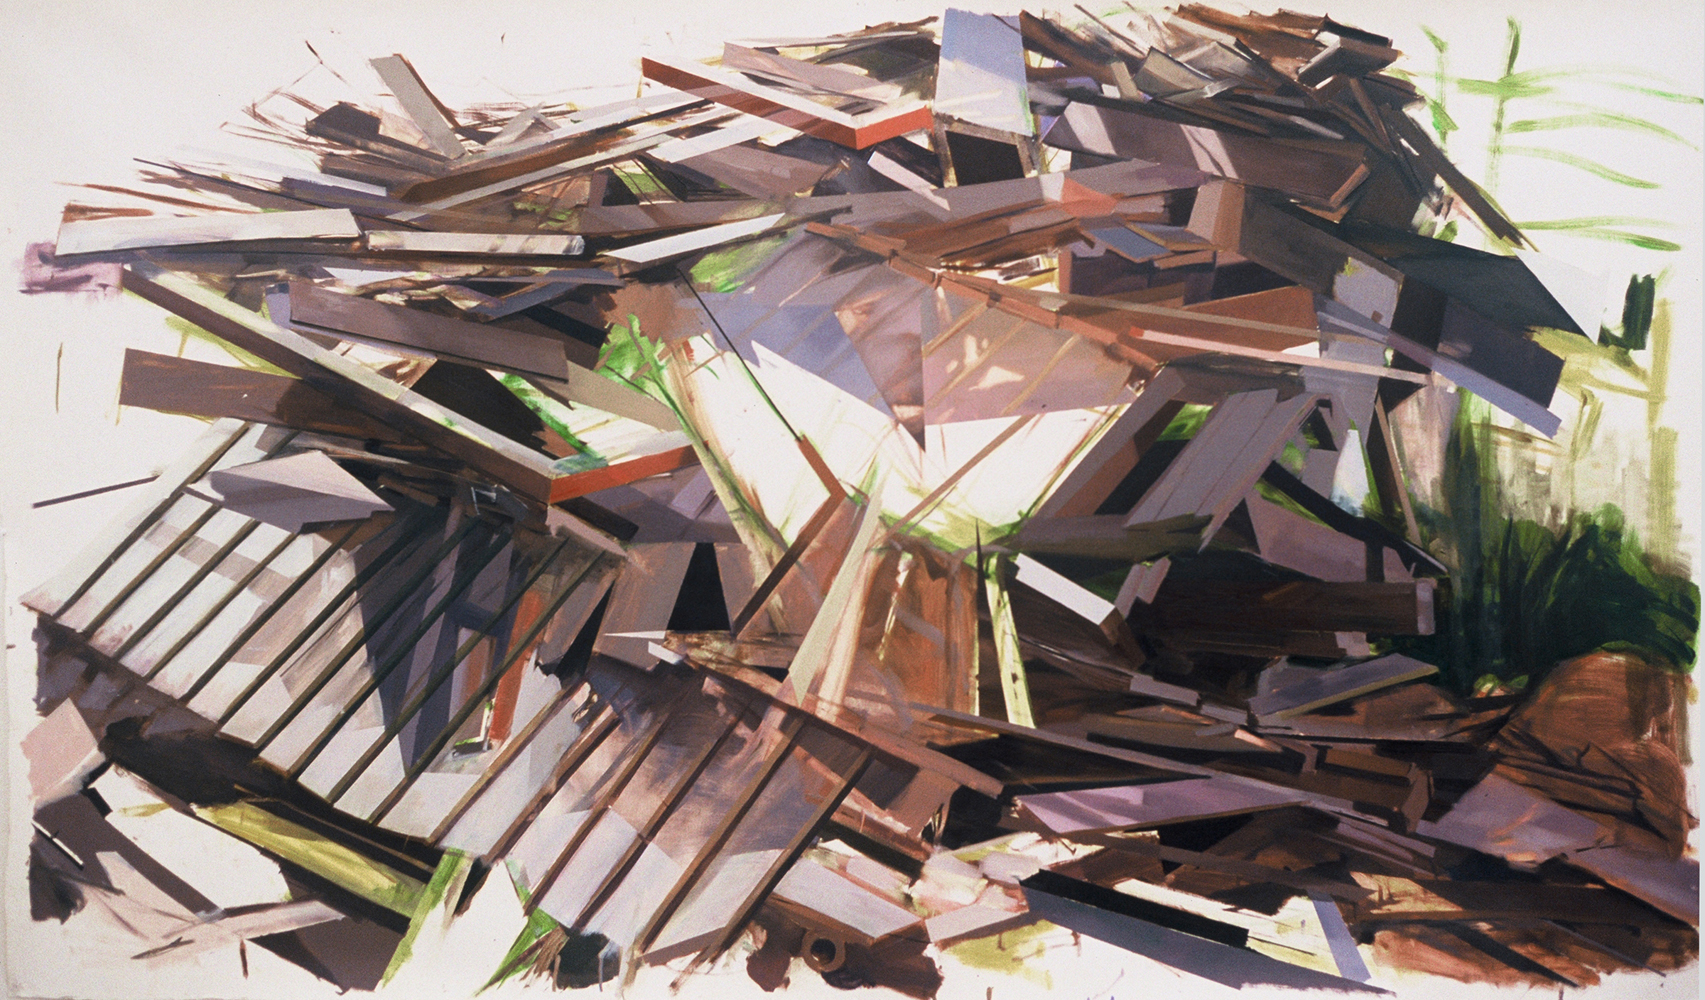 Thuy-Van Vu, Remnants of a House on Eastern Avenue, 2006, oil on paper, 51 x 86 inches